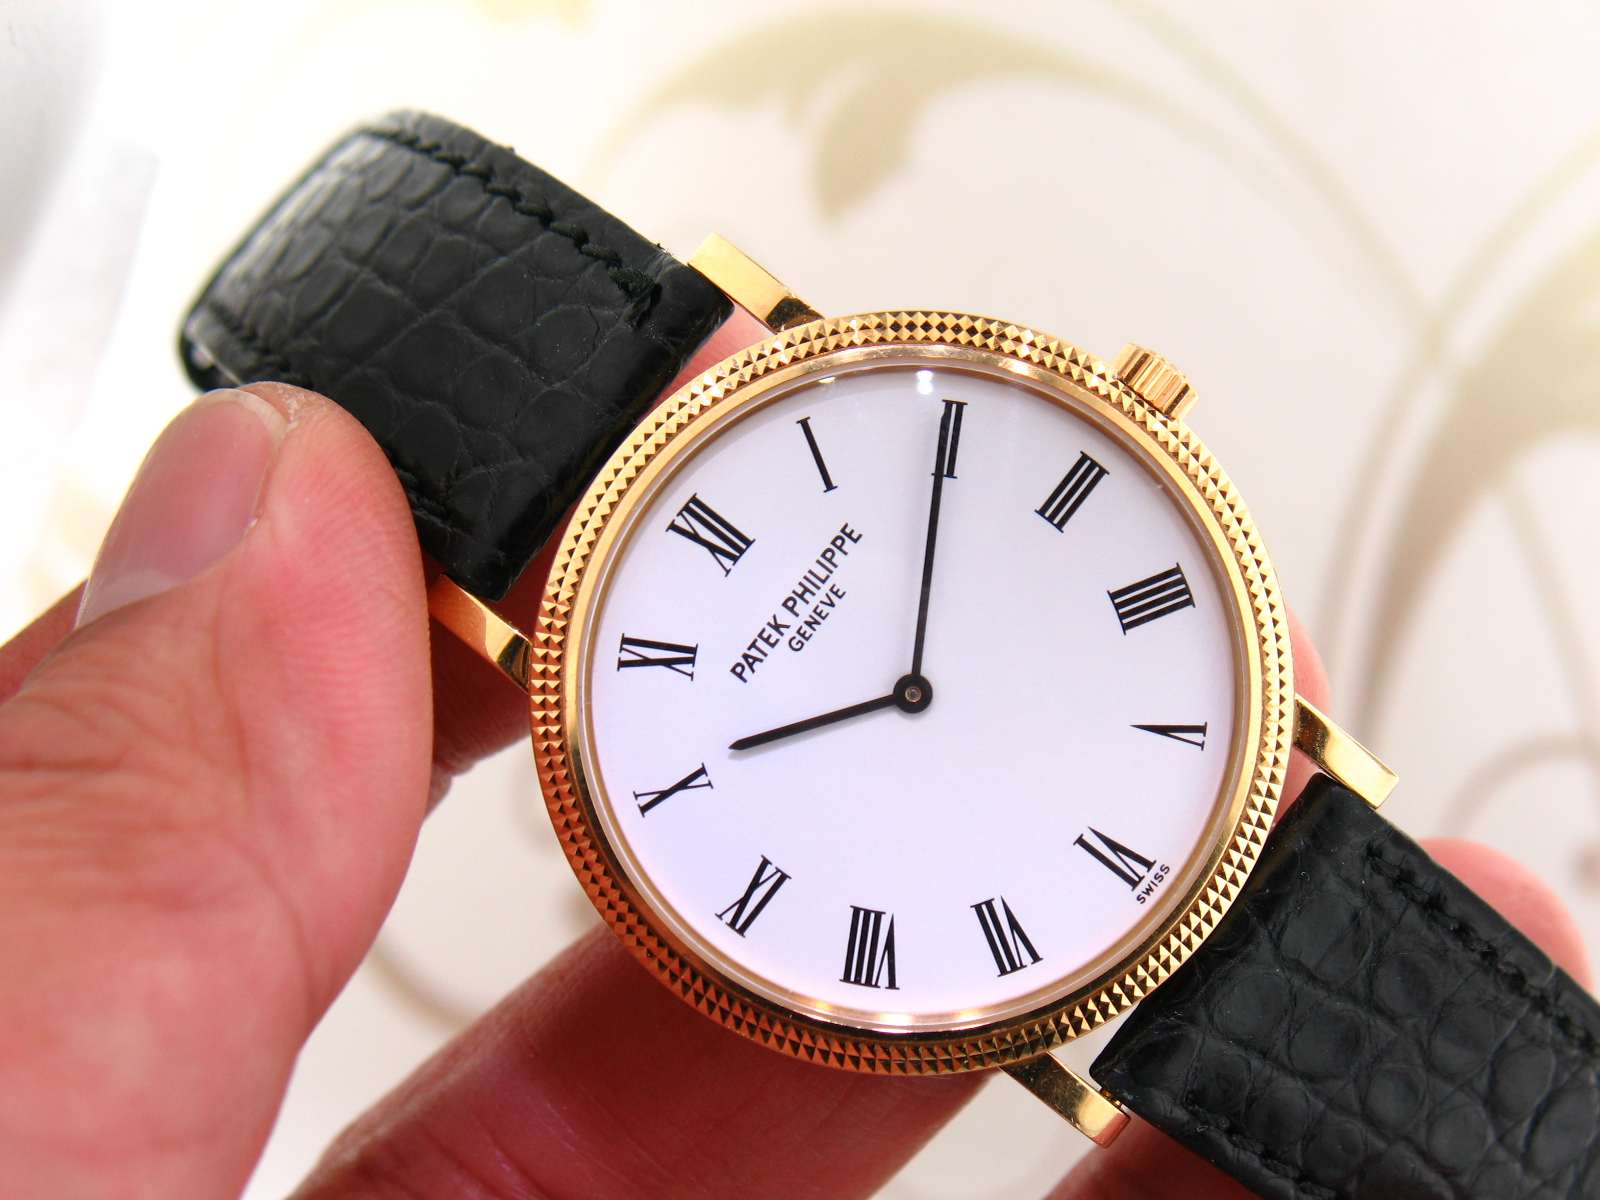 Patek Philippe 5120Y Calatrava, Yellow Gold - Click Image to Close